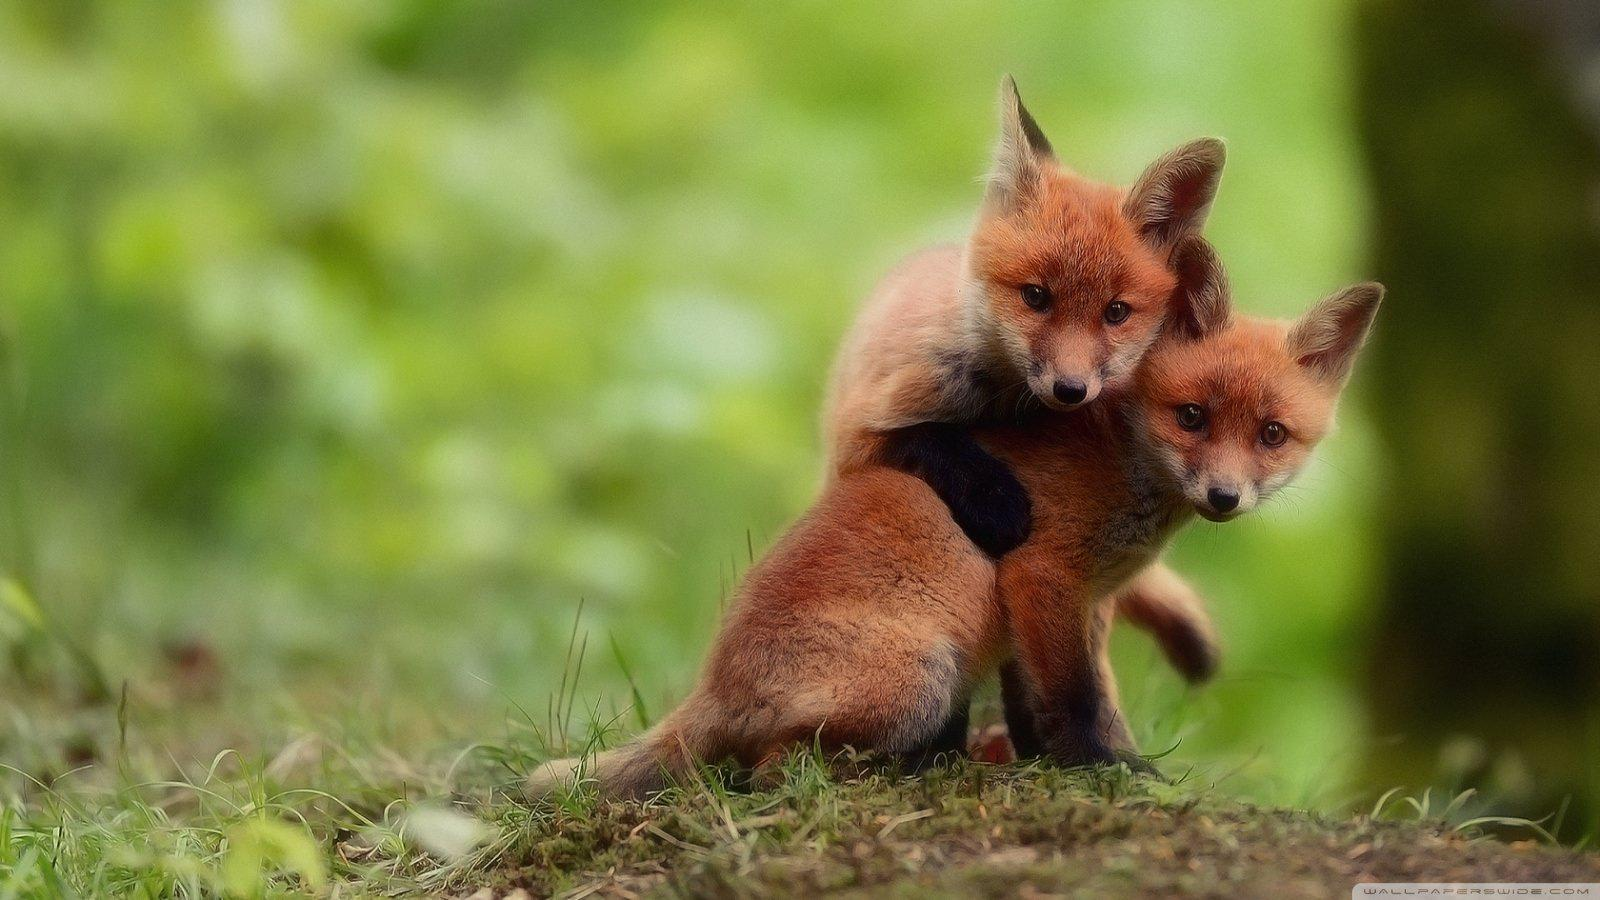 Baby Fox Wallpaper For Android Apk Download